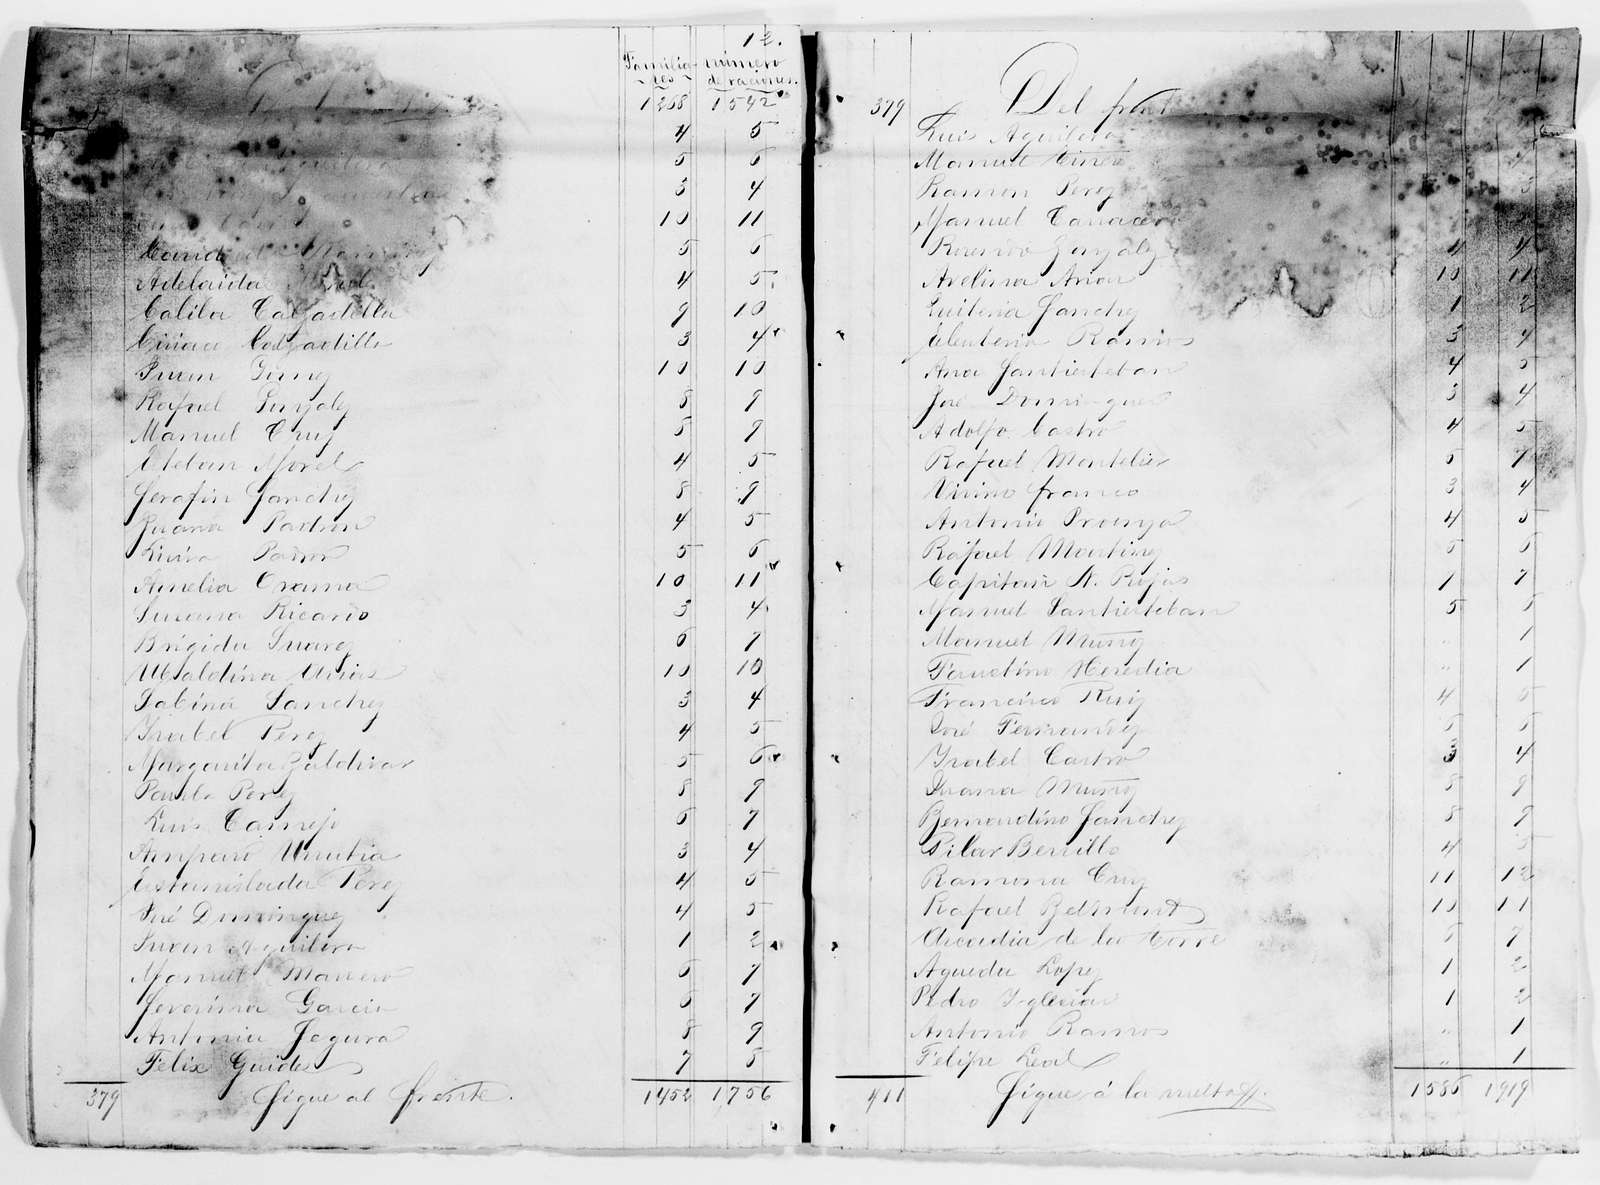 Clara Barton Papers: Red Cross File, 1863-1957; American National Red Cross, 1878-1957; Relief operations; Spanish-American War; Field operations; Santa Clara Province, Cuba; Distribution and domicile reports